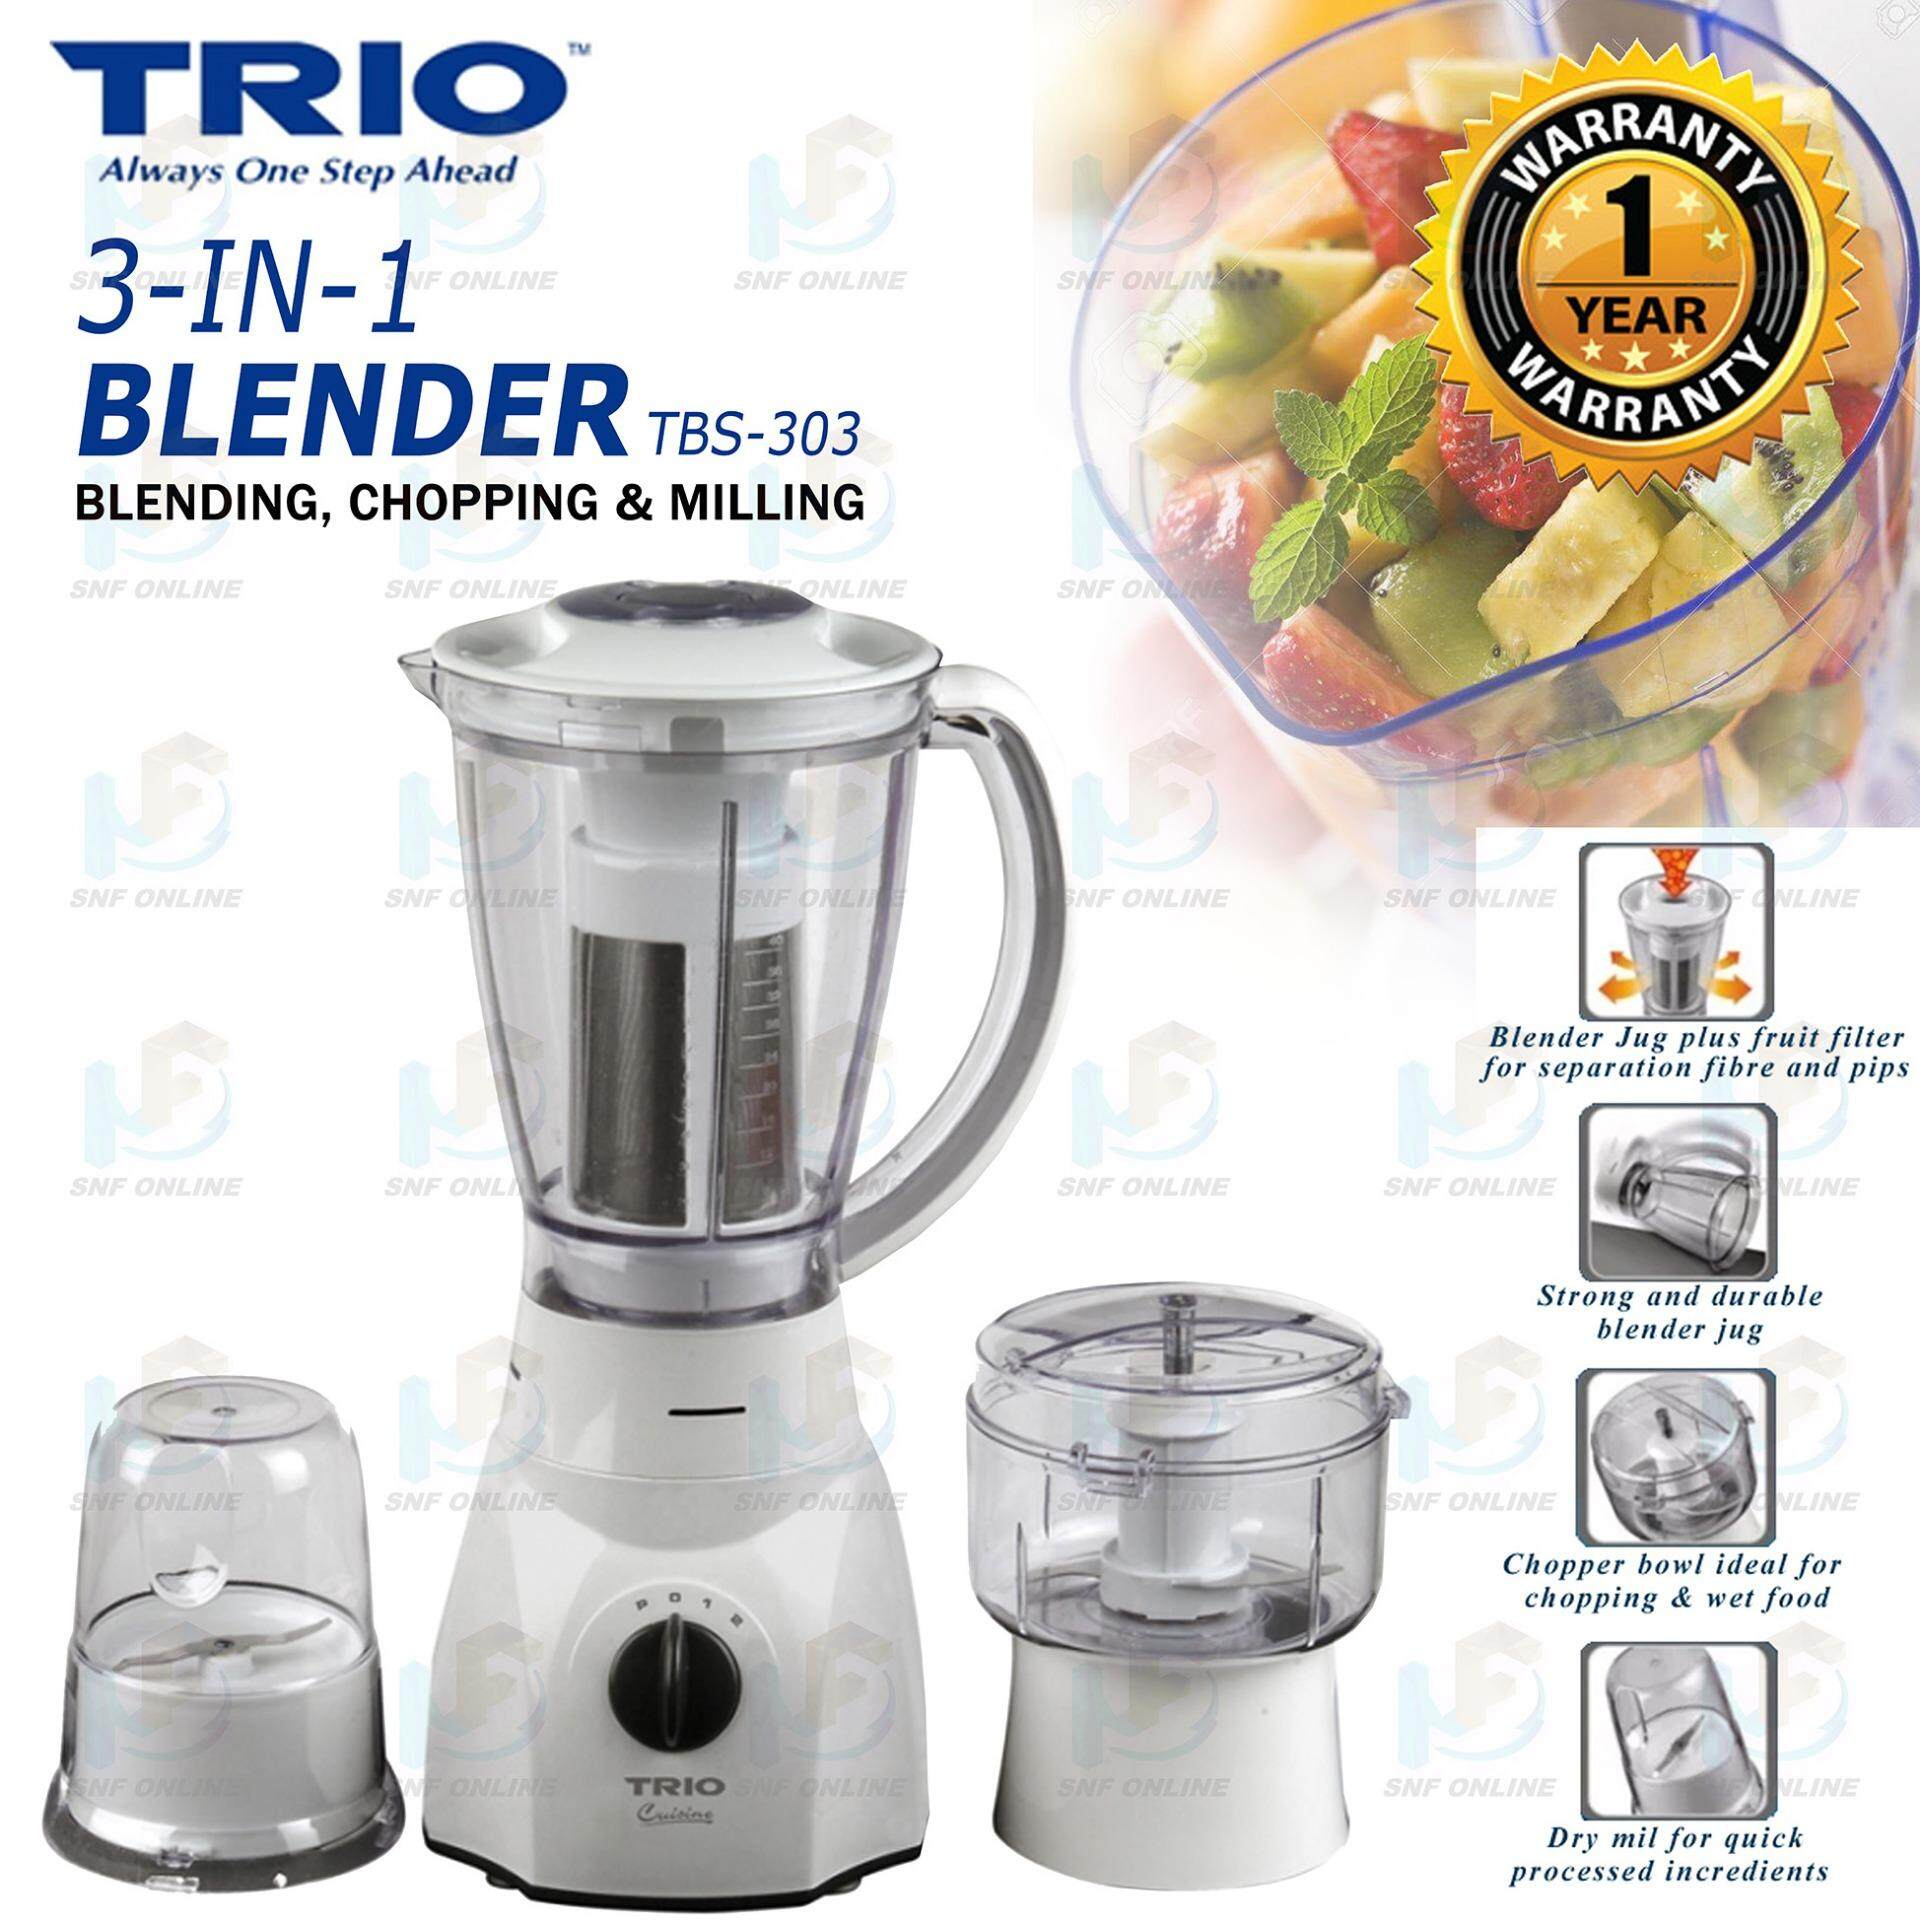 Trio Blender 3-in-1 Blender Buah TBS-303